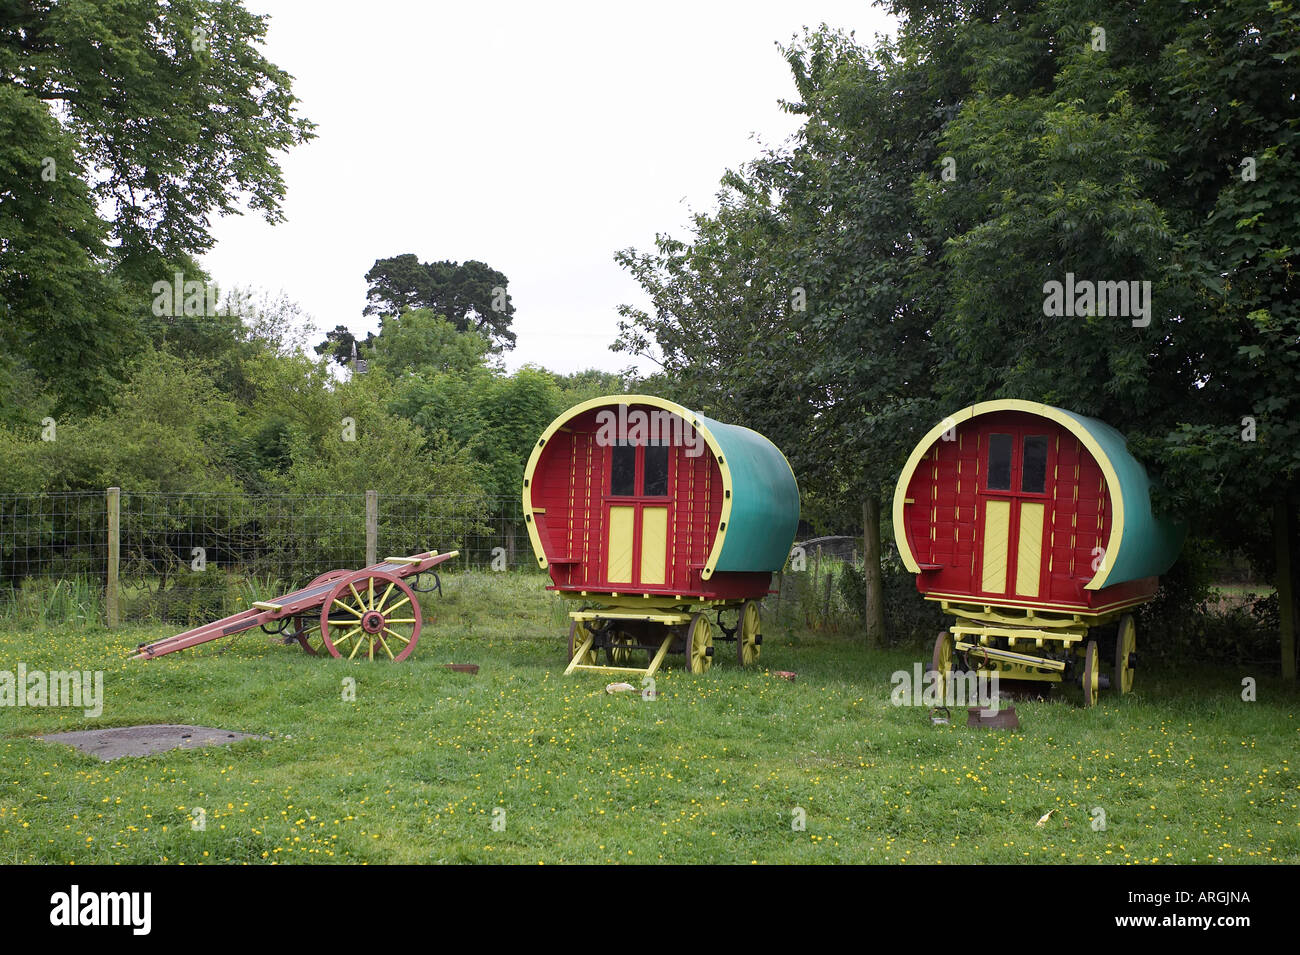 horse drawn irish gypsy travellers wagons in a field Bunratty Folk Park County Clare Republic of Ireland - Stock Image